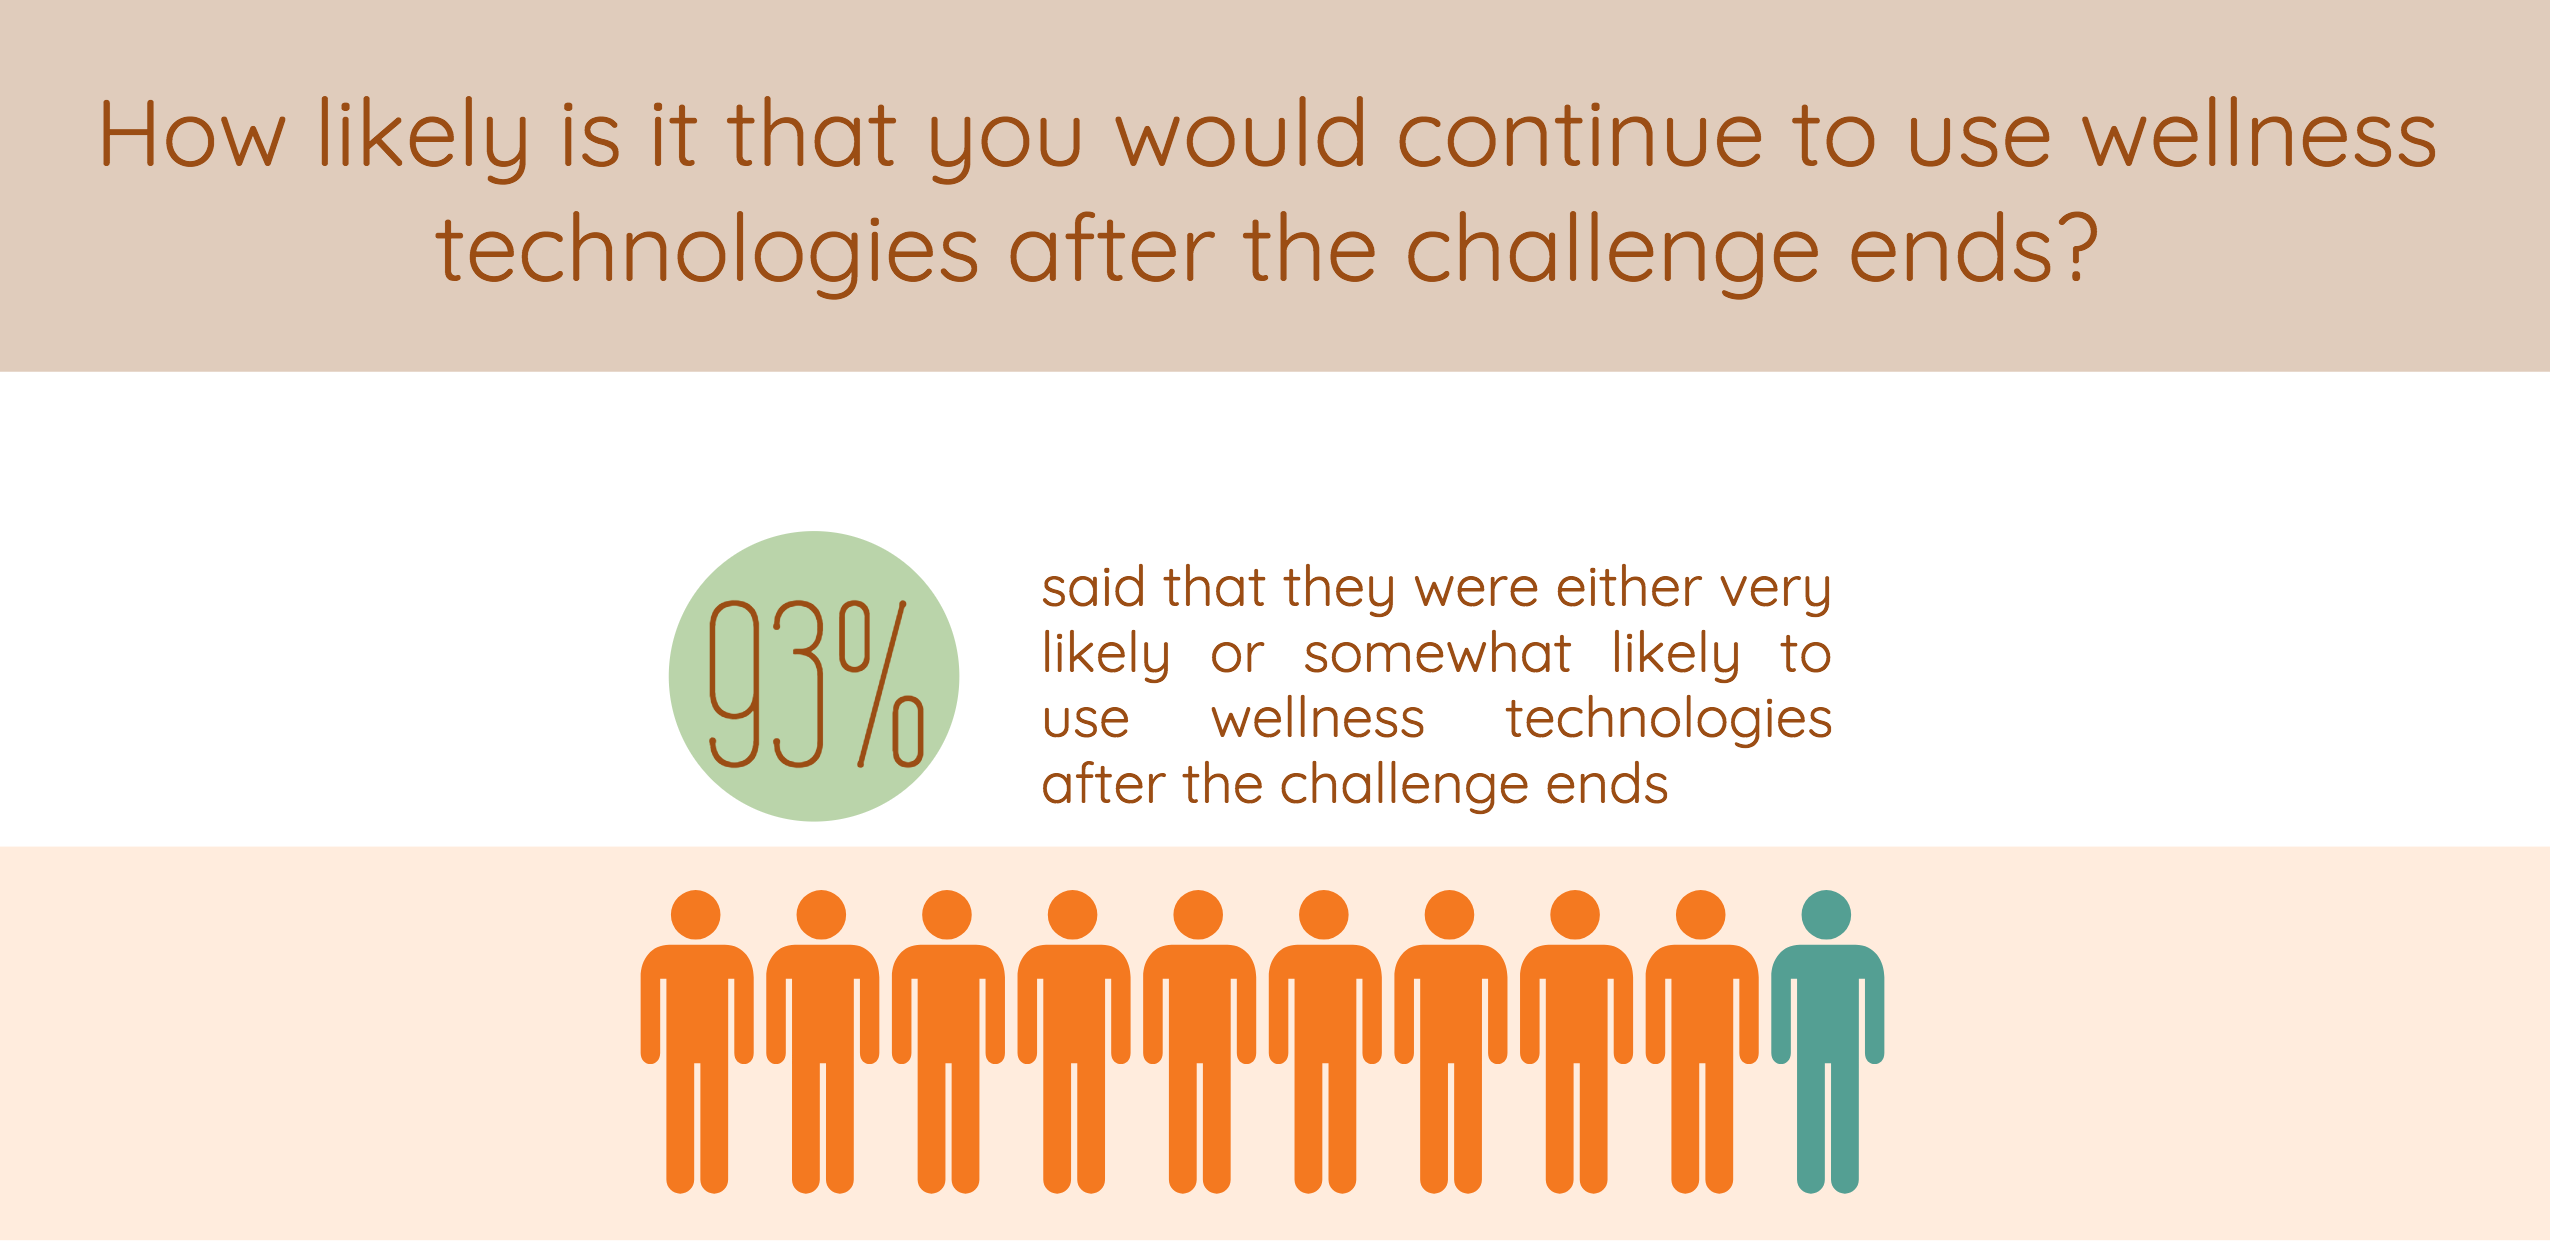 How likely is it that you would continue to use wellness technologies after the challenge ends?